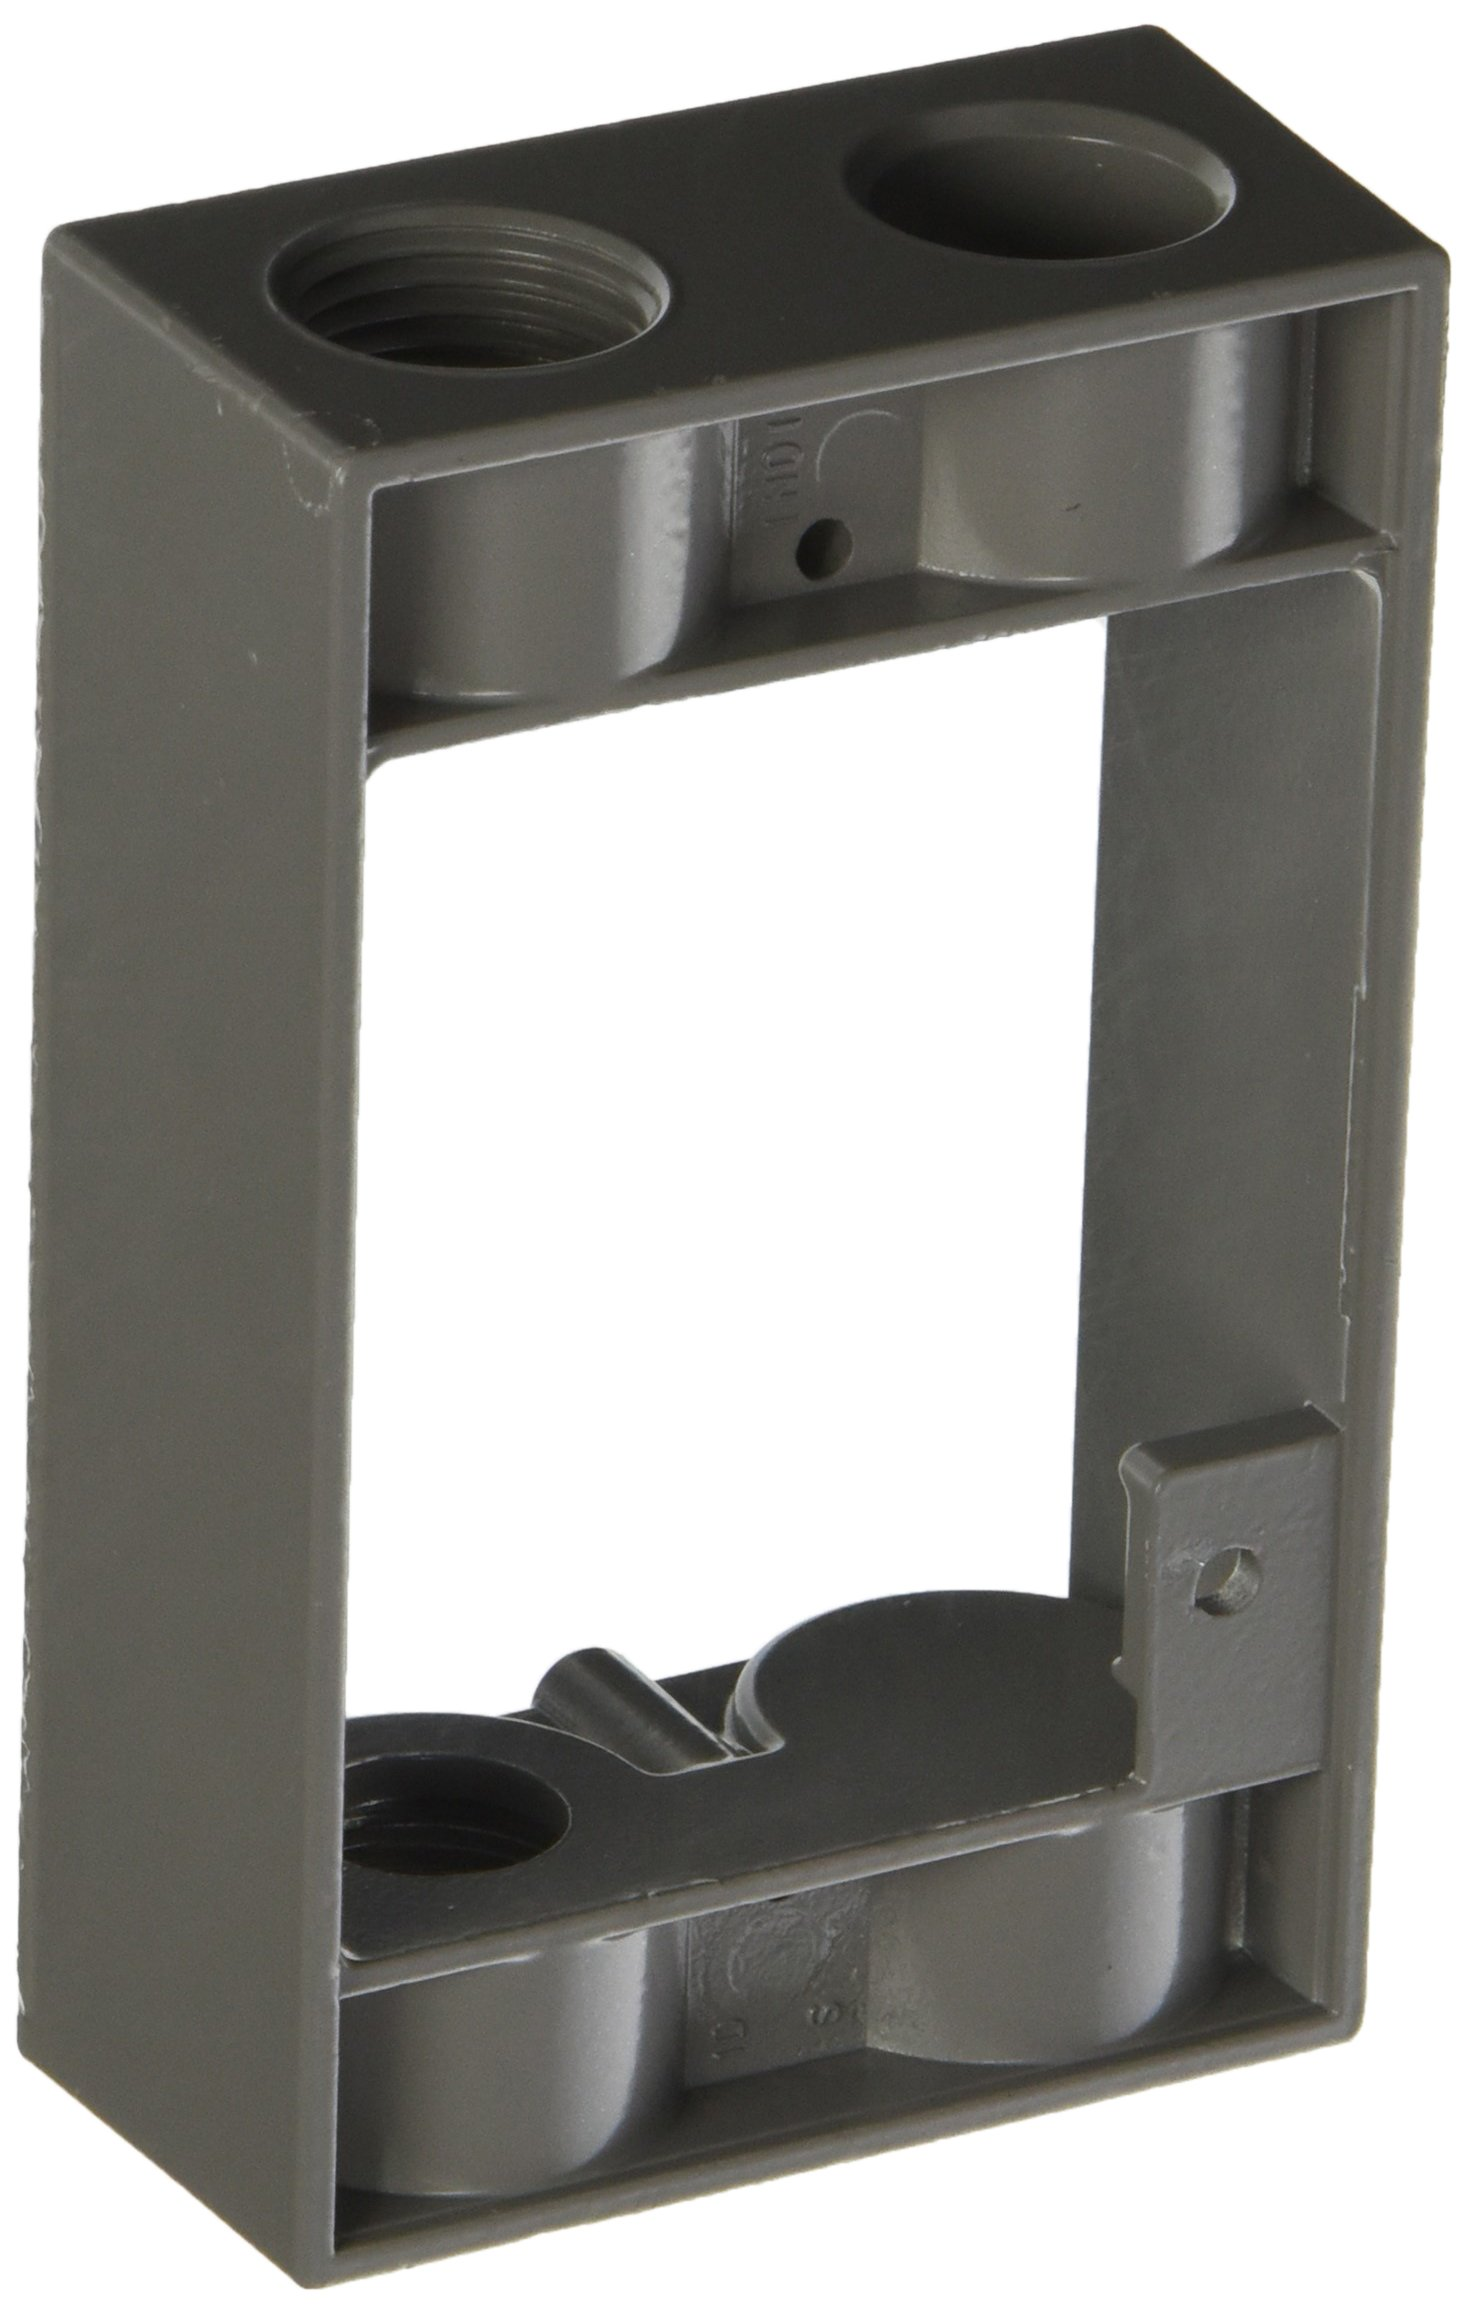 Hubbell-Bell 5399-0 Weatherproof Box Extension Adapter, 5-1/4-Inch X 3-1/2-Inch